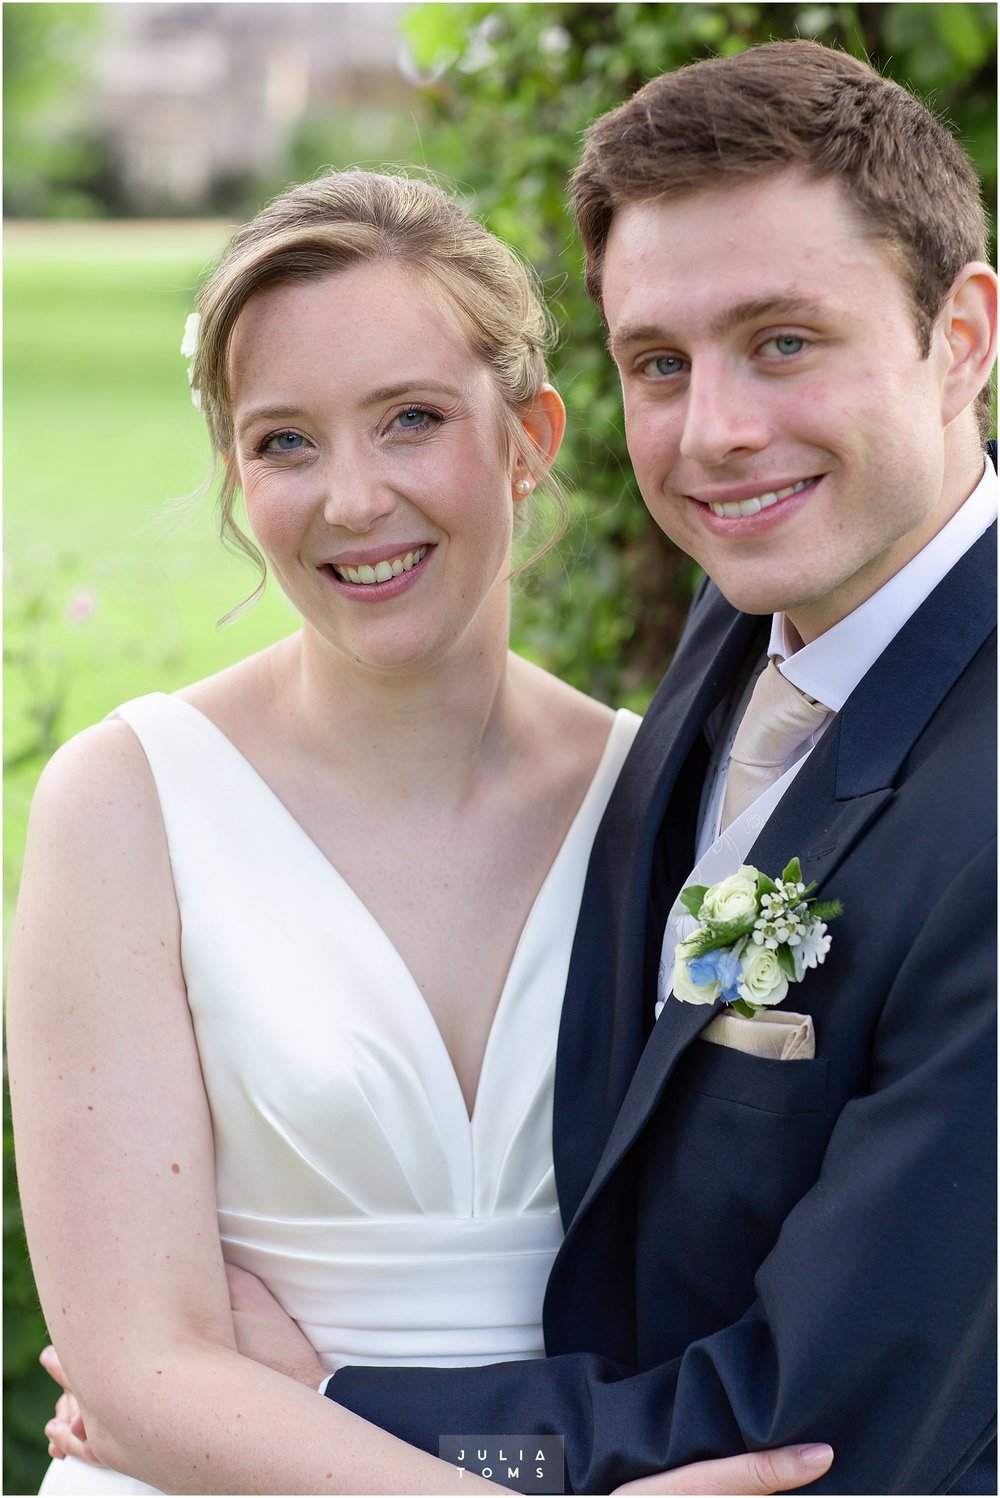 westsussex_wedding_photographer_westdean_080.jpg